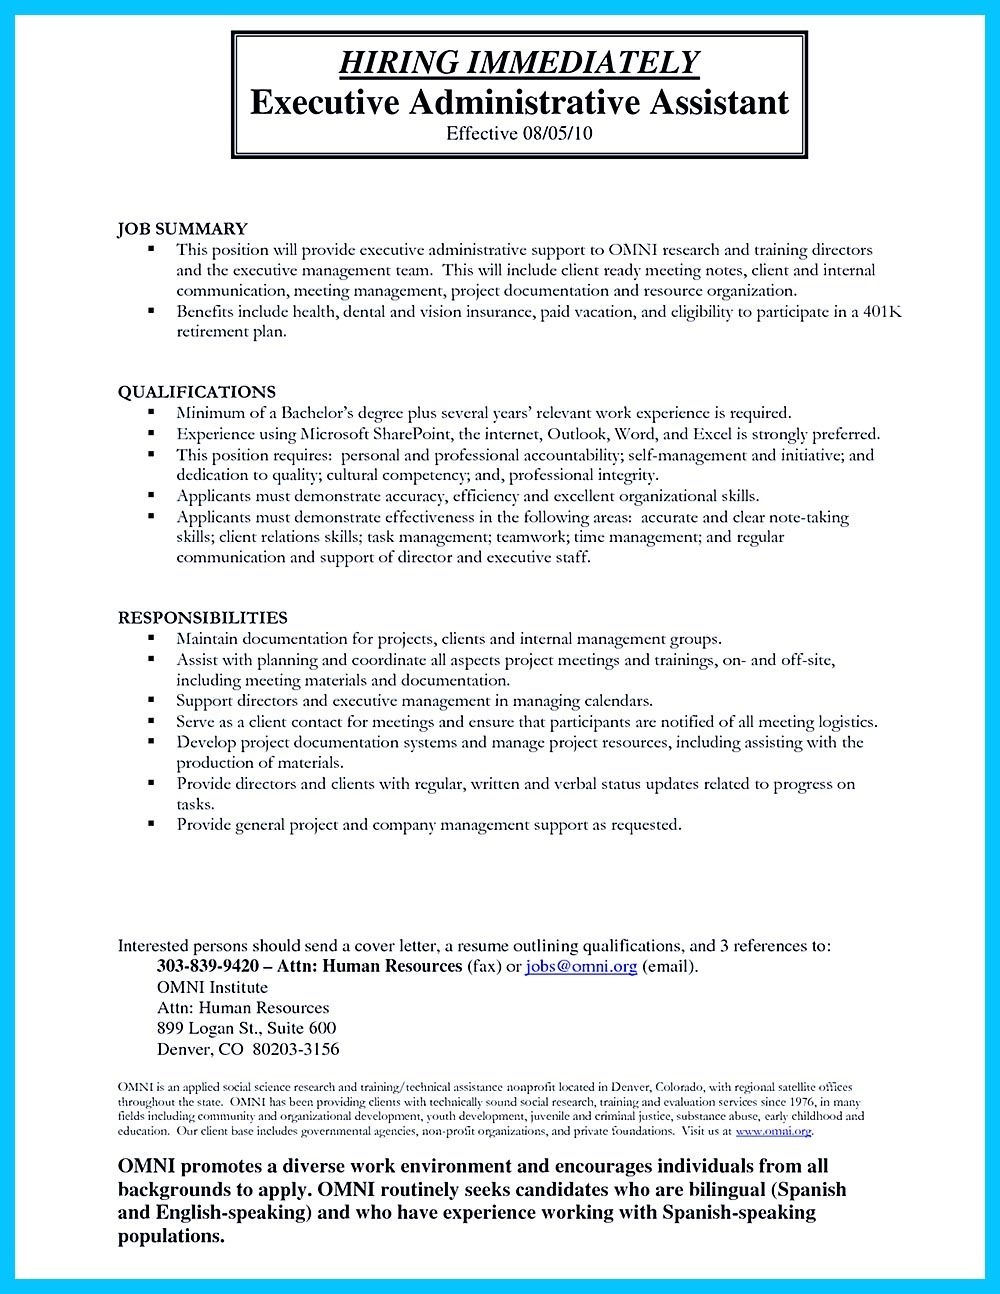 Administrative Assistant Resume Sample Impressive In Writing Entry Level Administrative Assistant Resume You Need To .